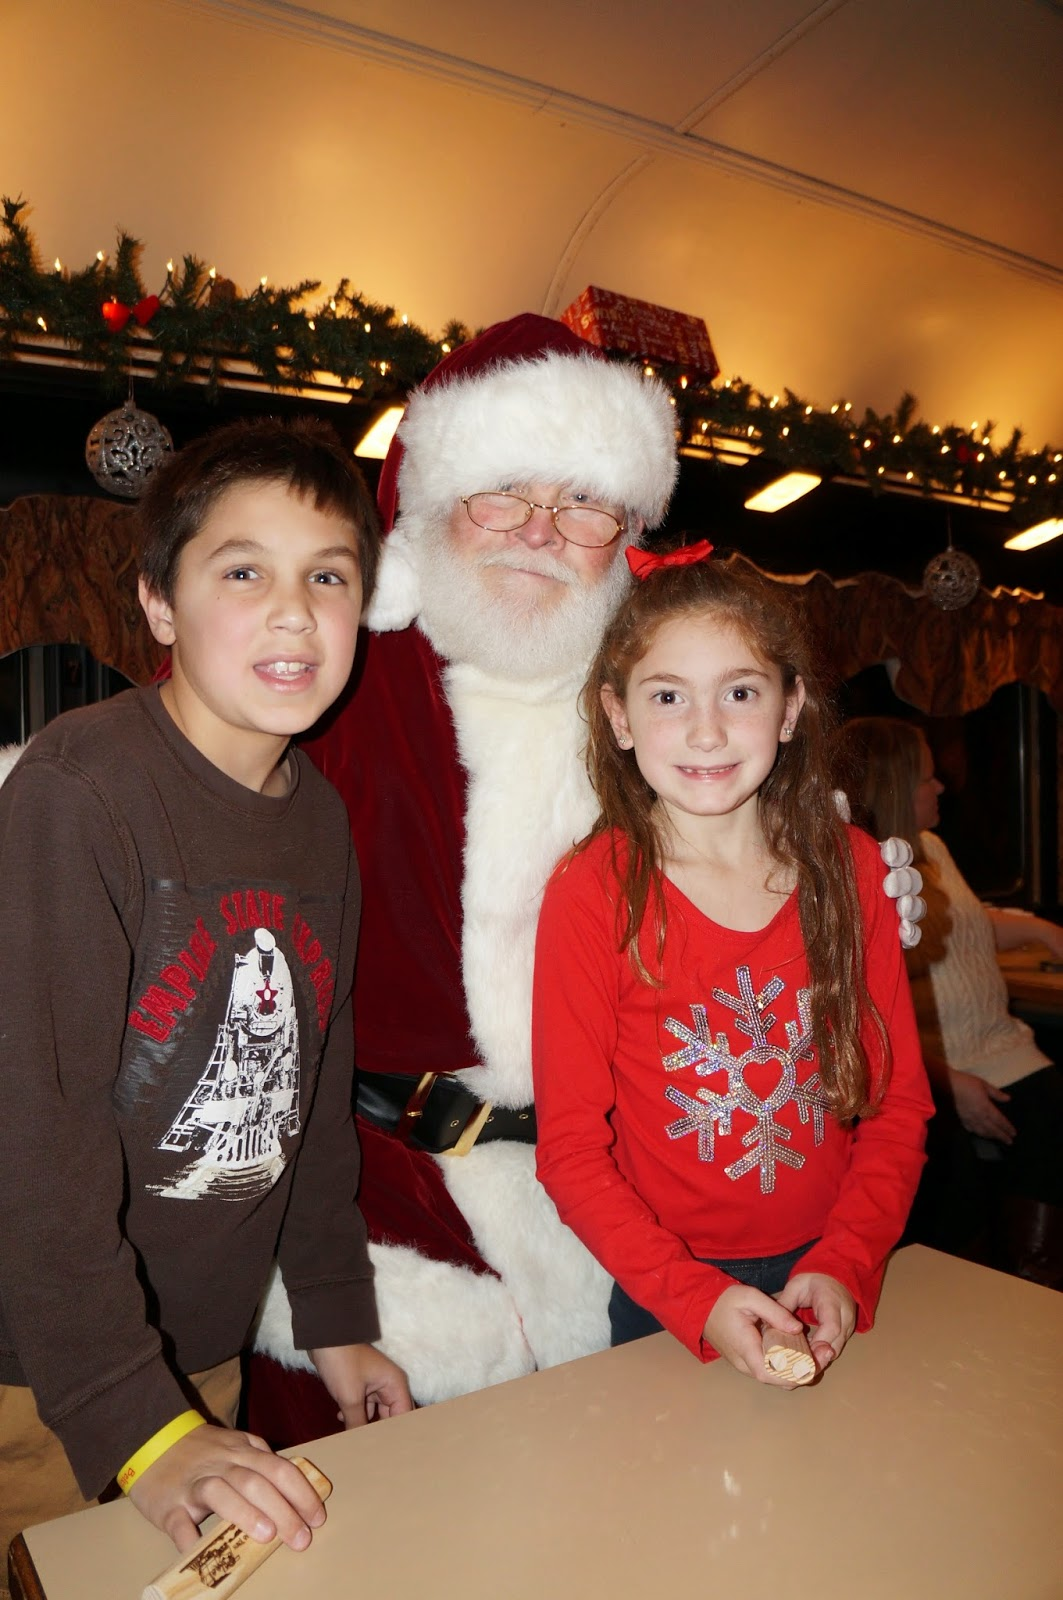 evan and laurens cool blog 112614 train to christmas town on the cape cod central railroad - Train To Christmas Town